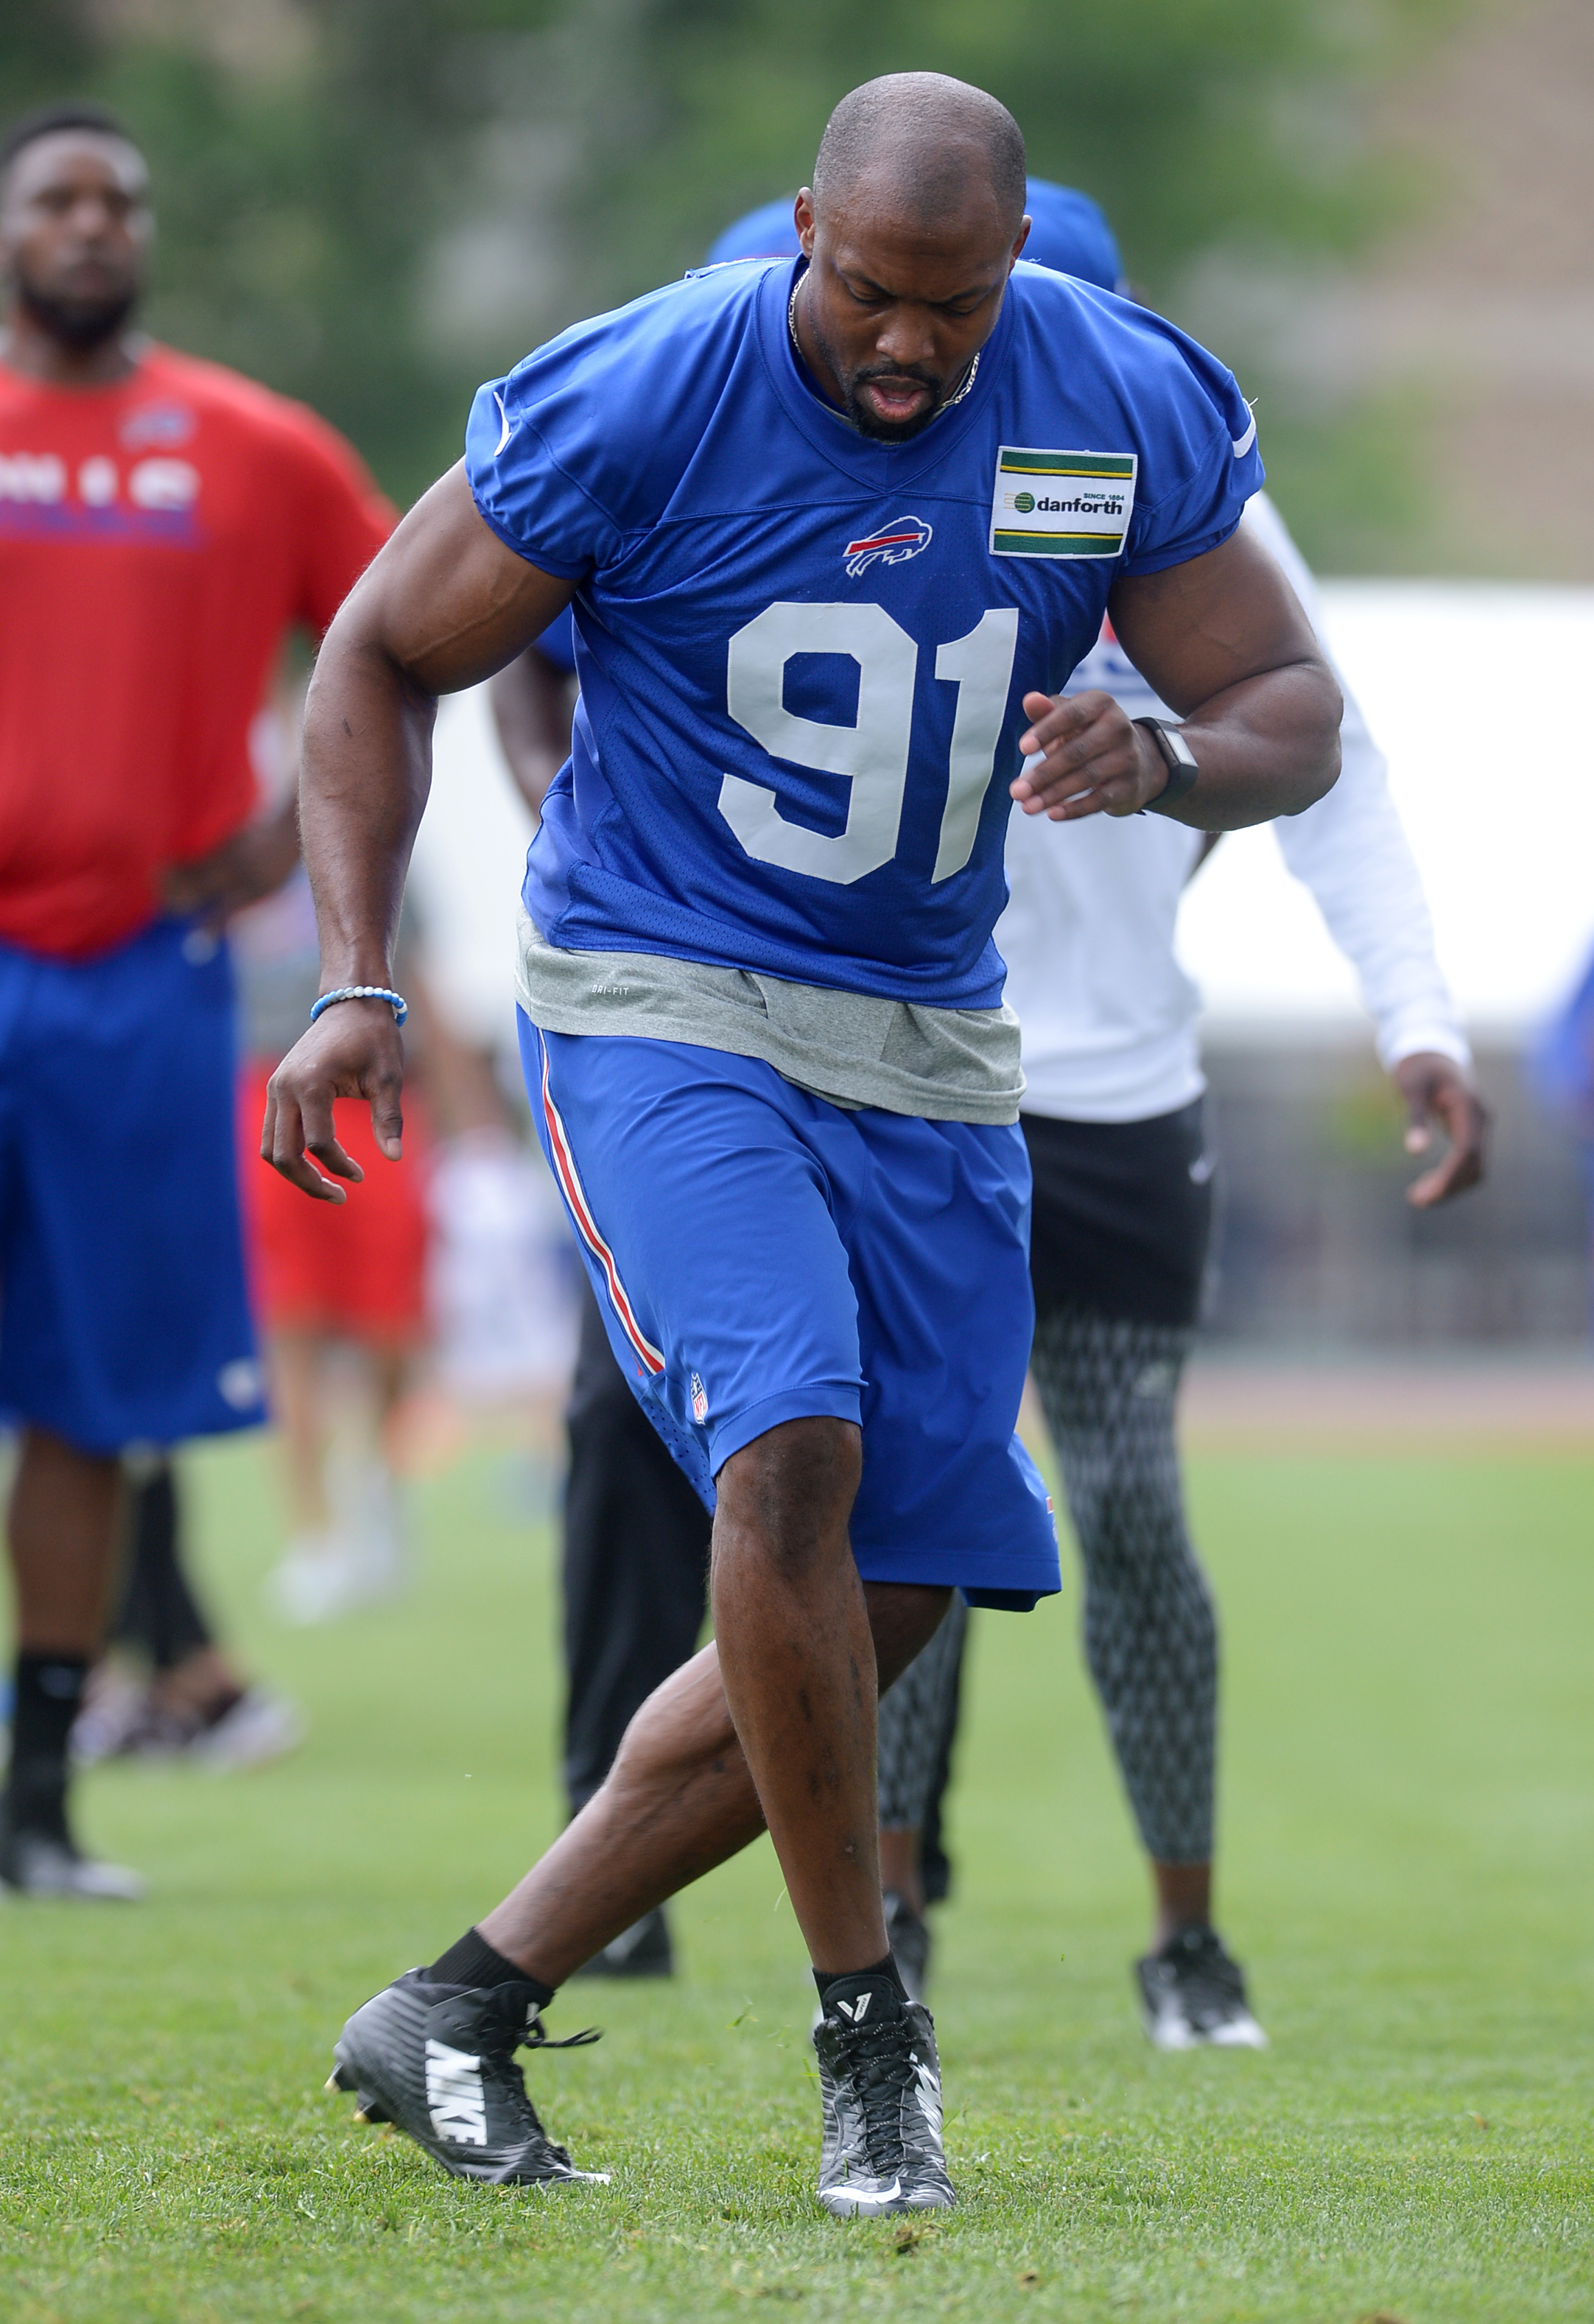 Buffalo Bills linebacker Manny Lawson (91) participates in drills during practice at the NFL football team training camp in Pittsford, N.Y., Monday, Aug. 1, 2016. (AP Photo/Adrian Kraus)